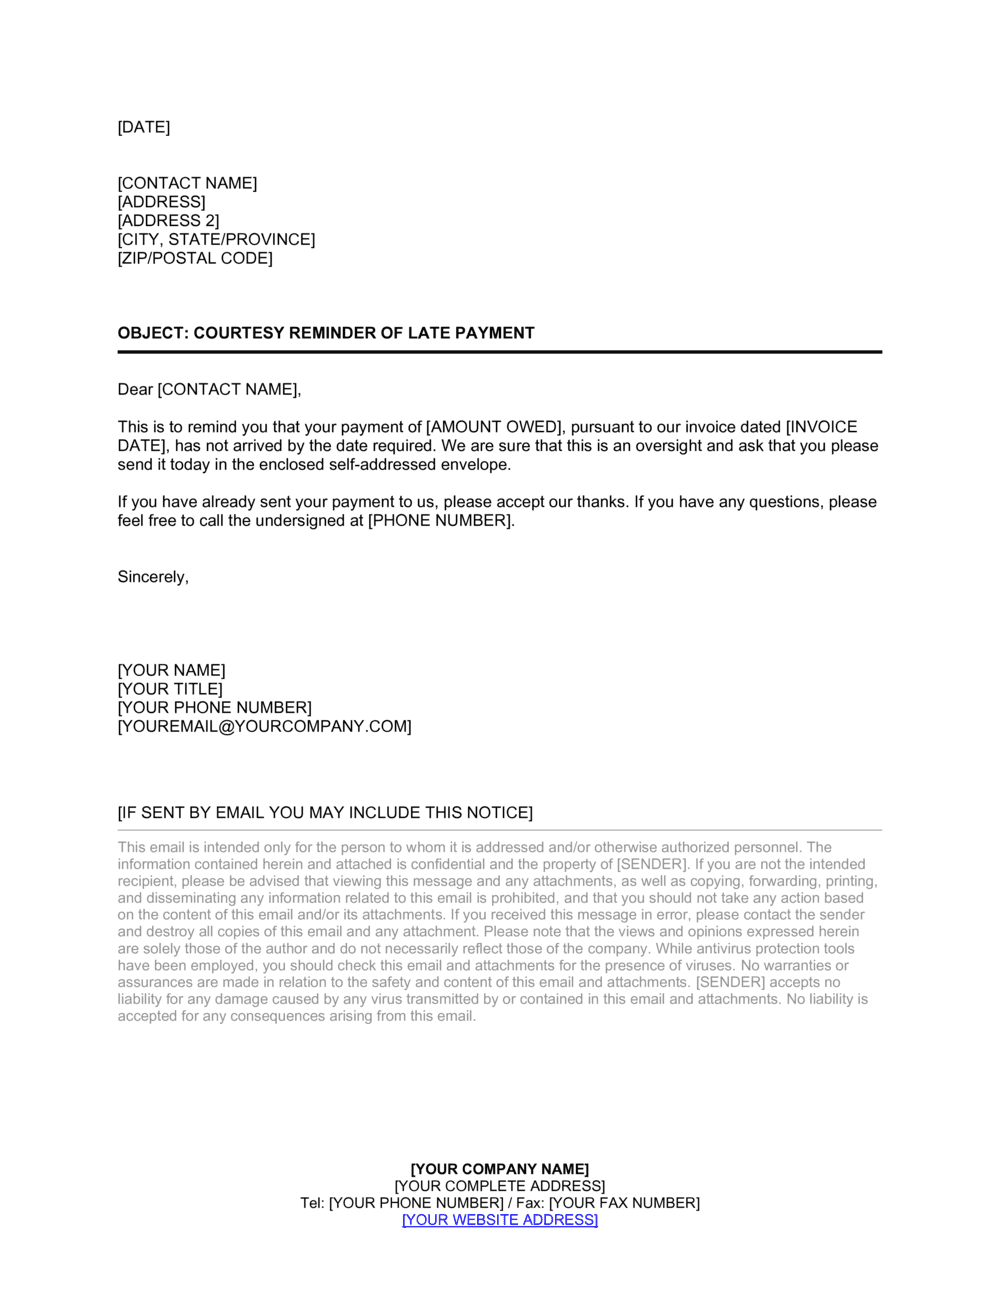 Business-in-a-Box's Collection Letter Initial Template